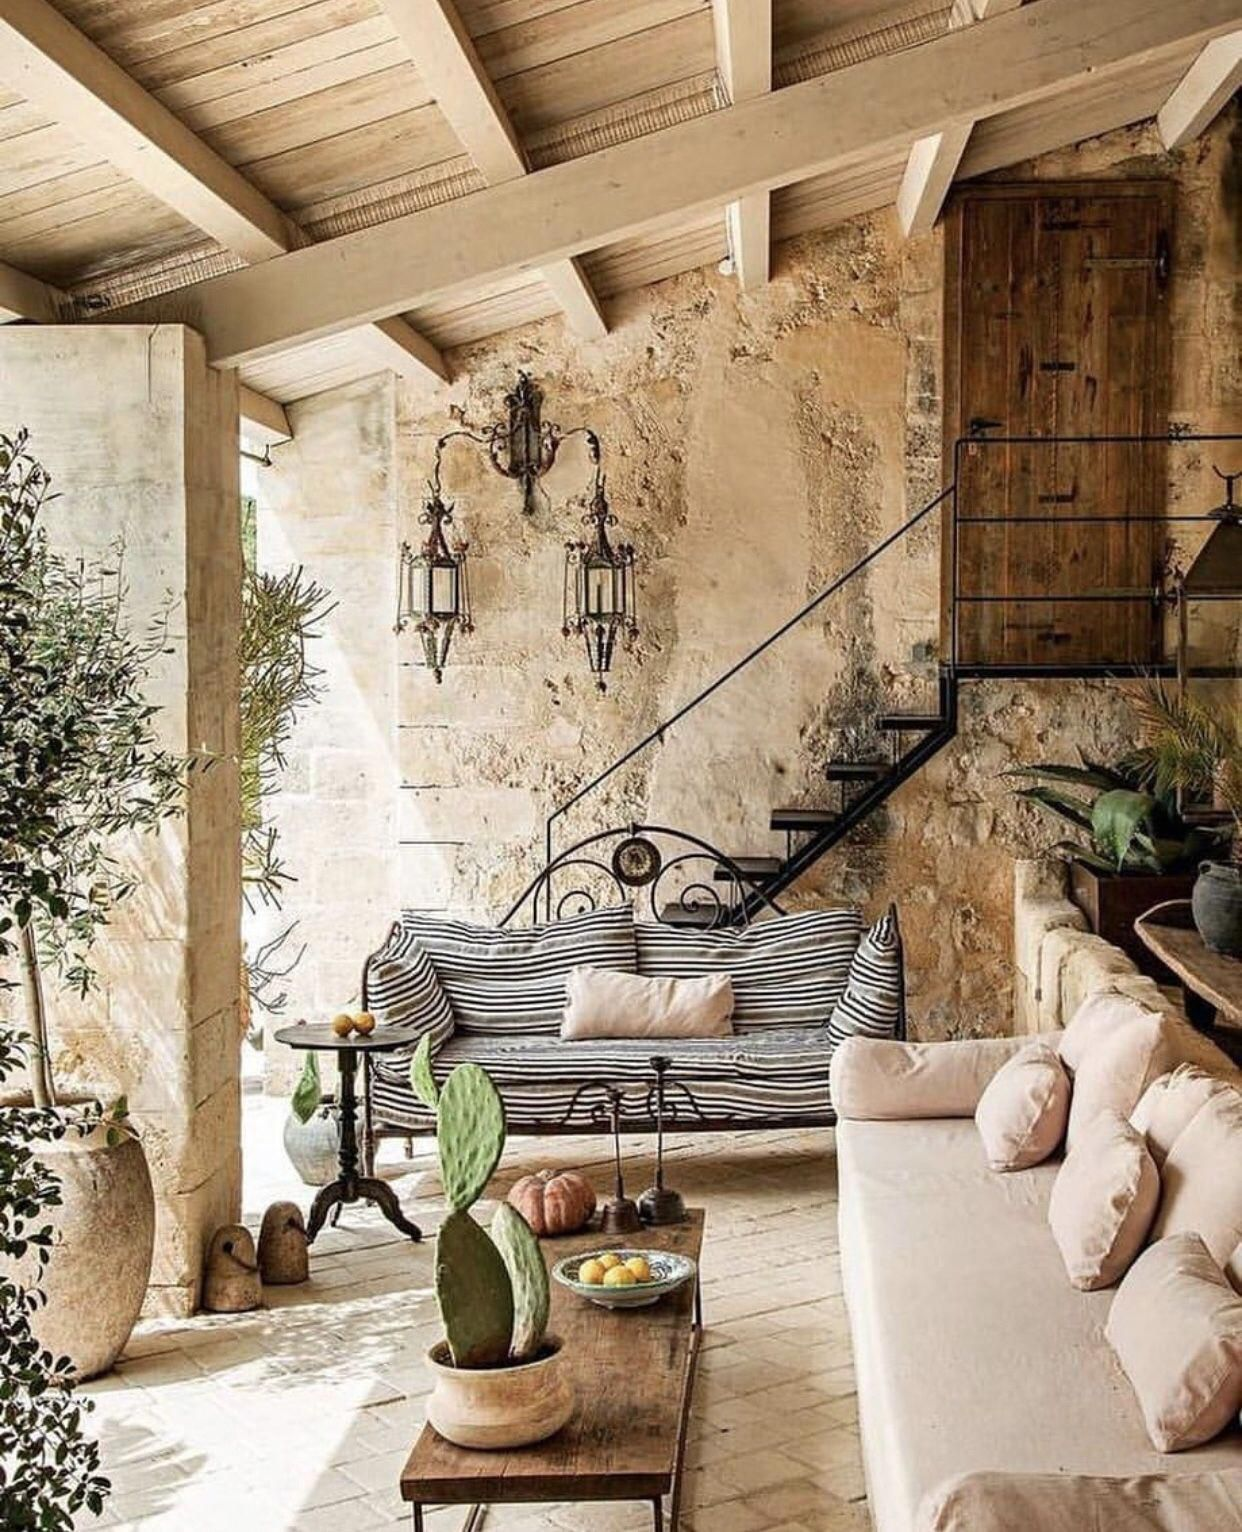 Tuscan Decor On A Budget Tuscandecor Tuscan Decorating Outdoor Rustic House